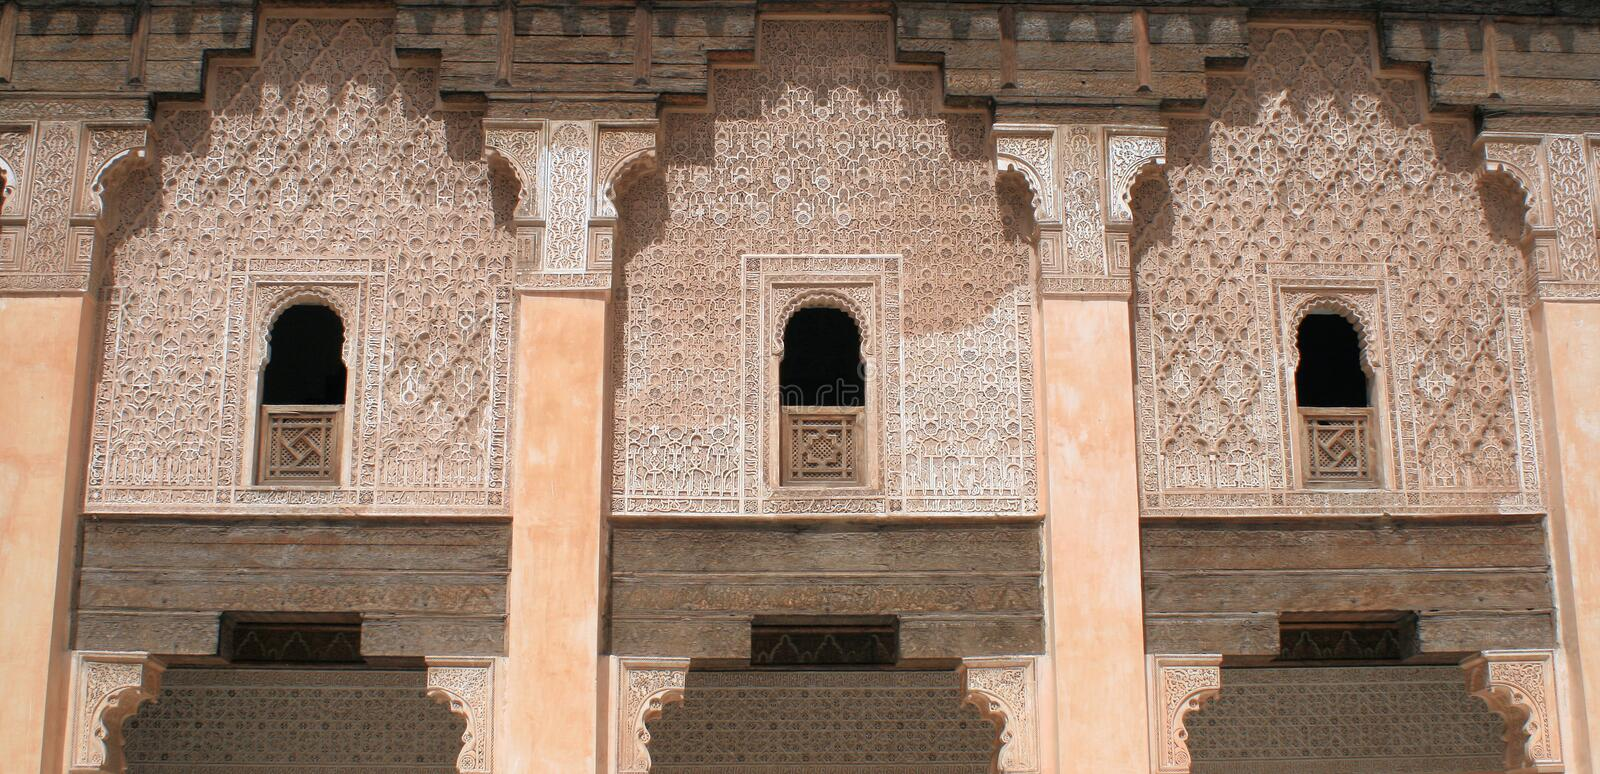 Stone fretwork wall 2. Stone fretwork wall in Morocco royalty free stock photography